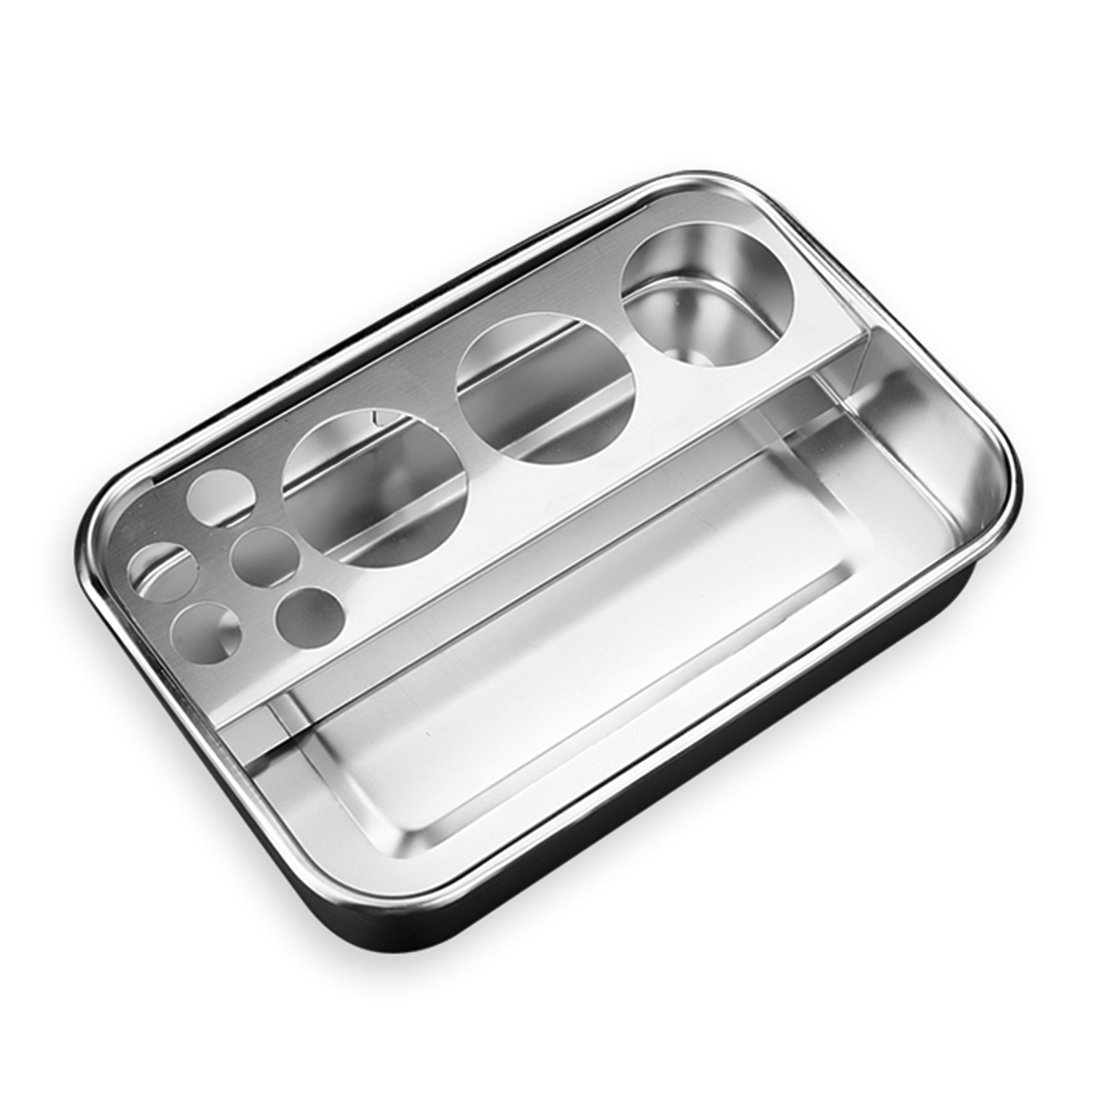 Stainless Steel Tray Medical Dental Instrument Organizer Lab Beauty Salon Tools Holder